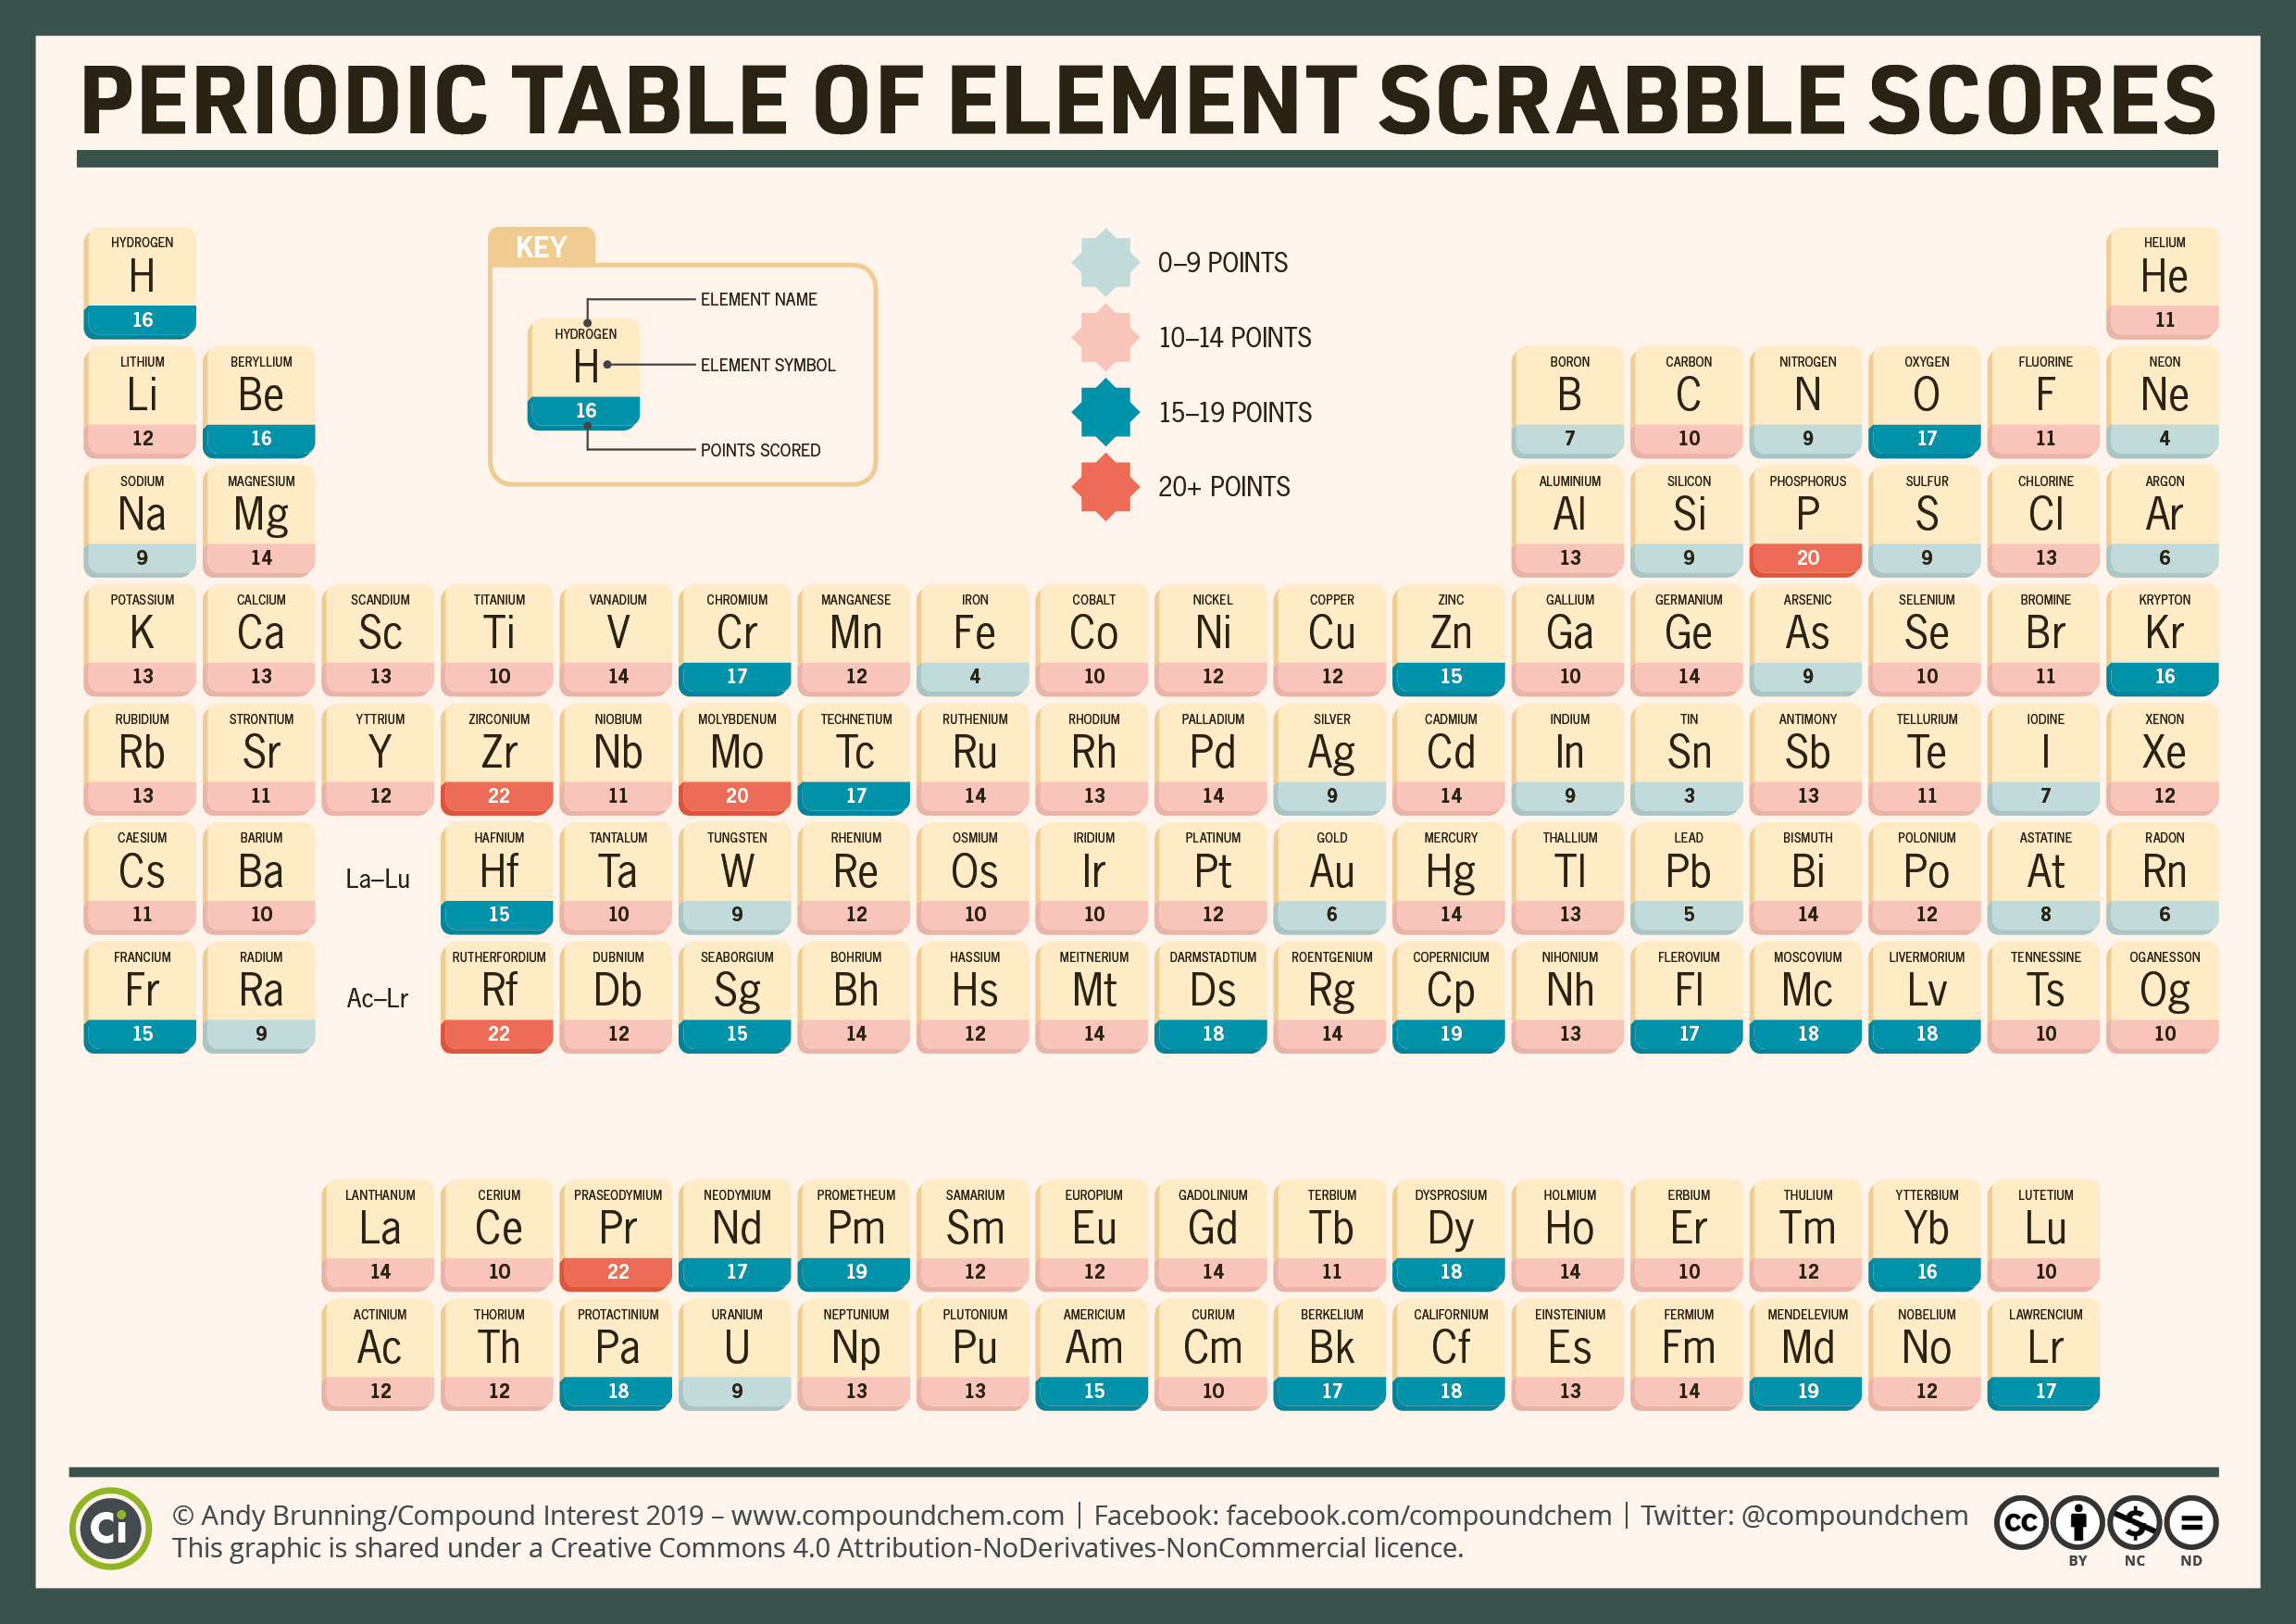 #IYPT2019: The periodic table of element Scrabble scores